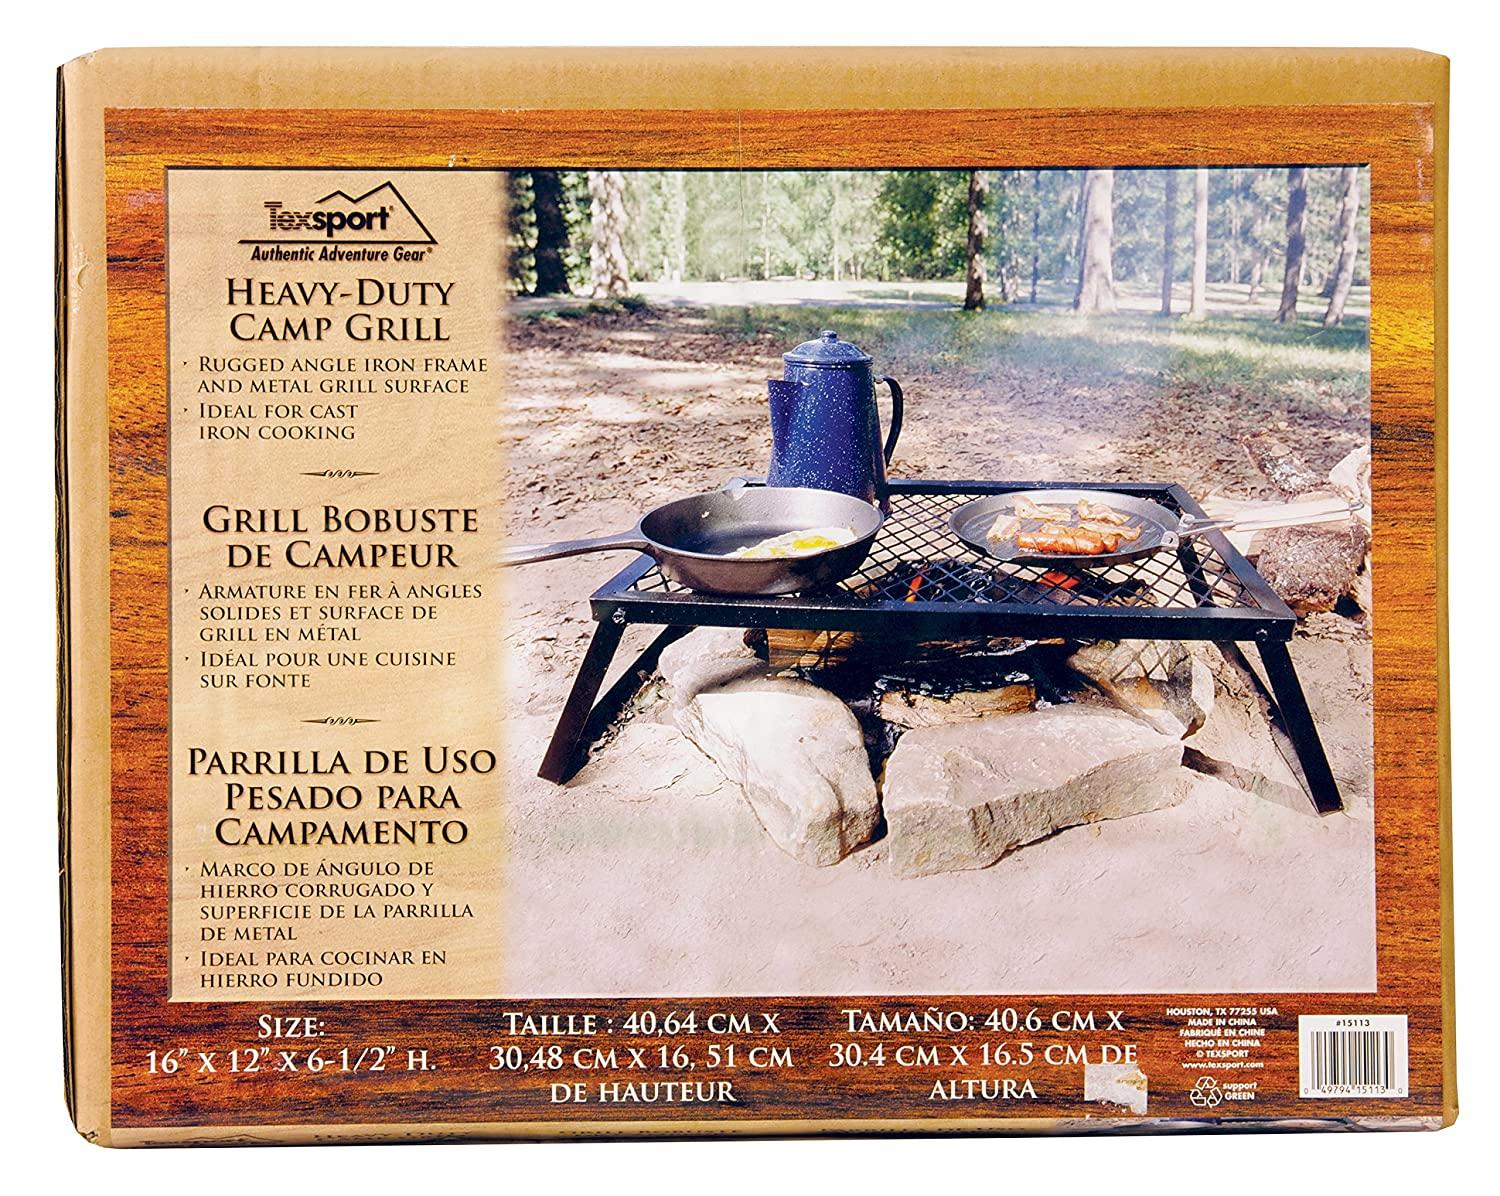 Amazon.com: Texsport Heavy Duty Over Fire Camp Grill: Sports & Outdoors